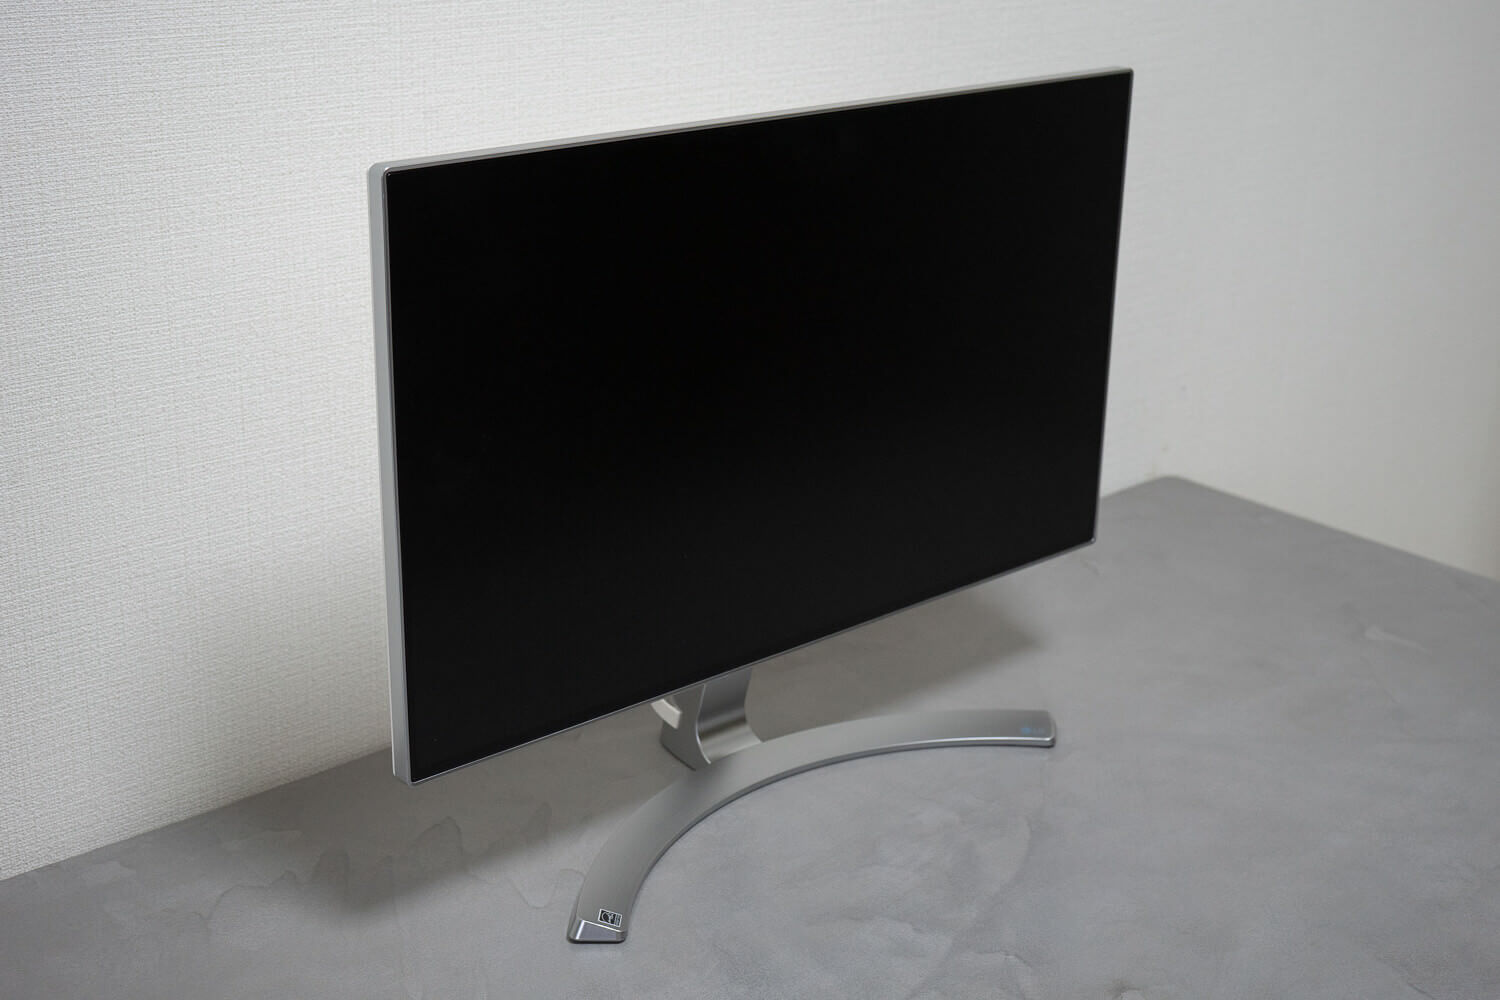 190103 lg display 24mp88 3